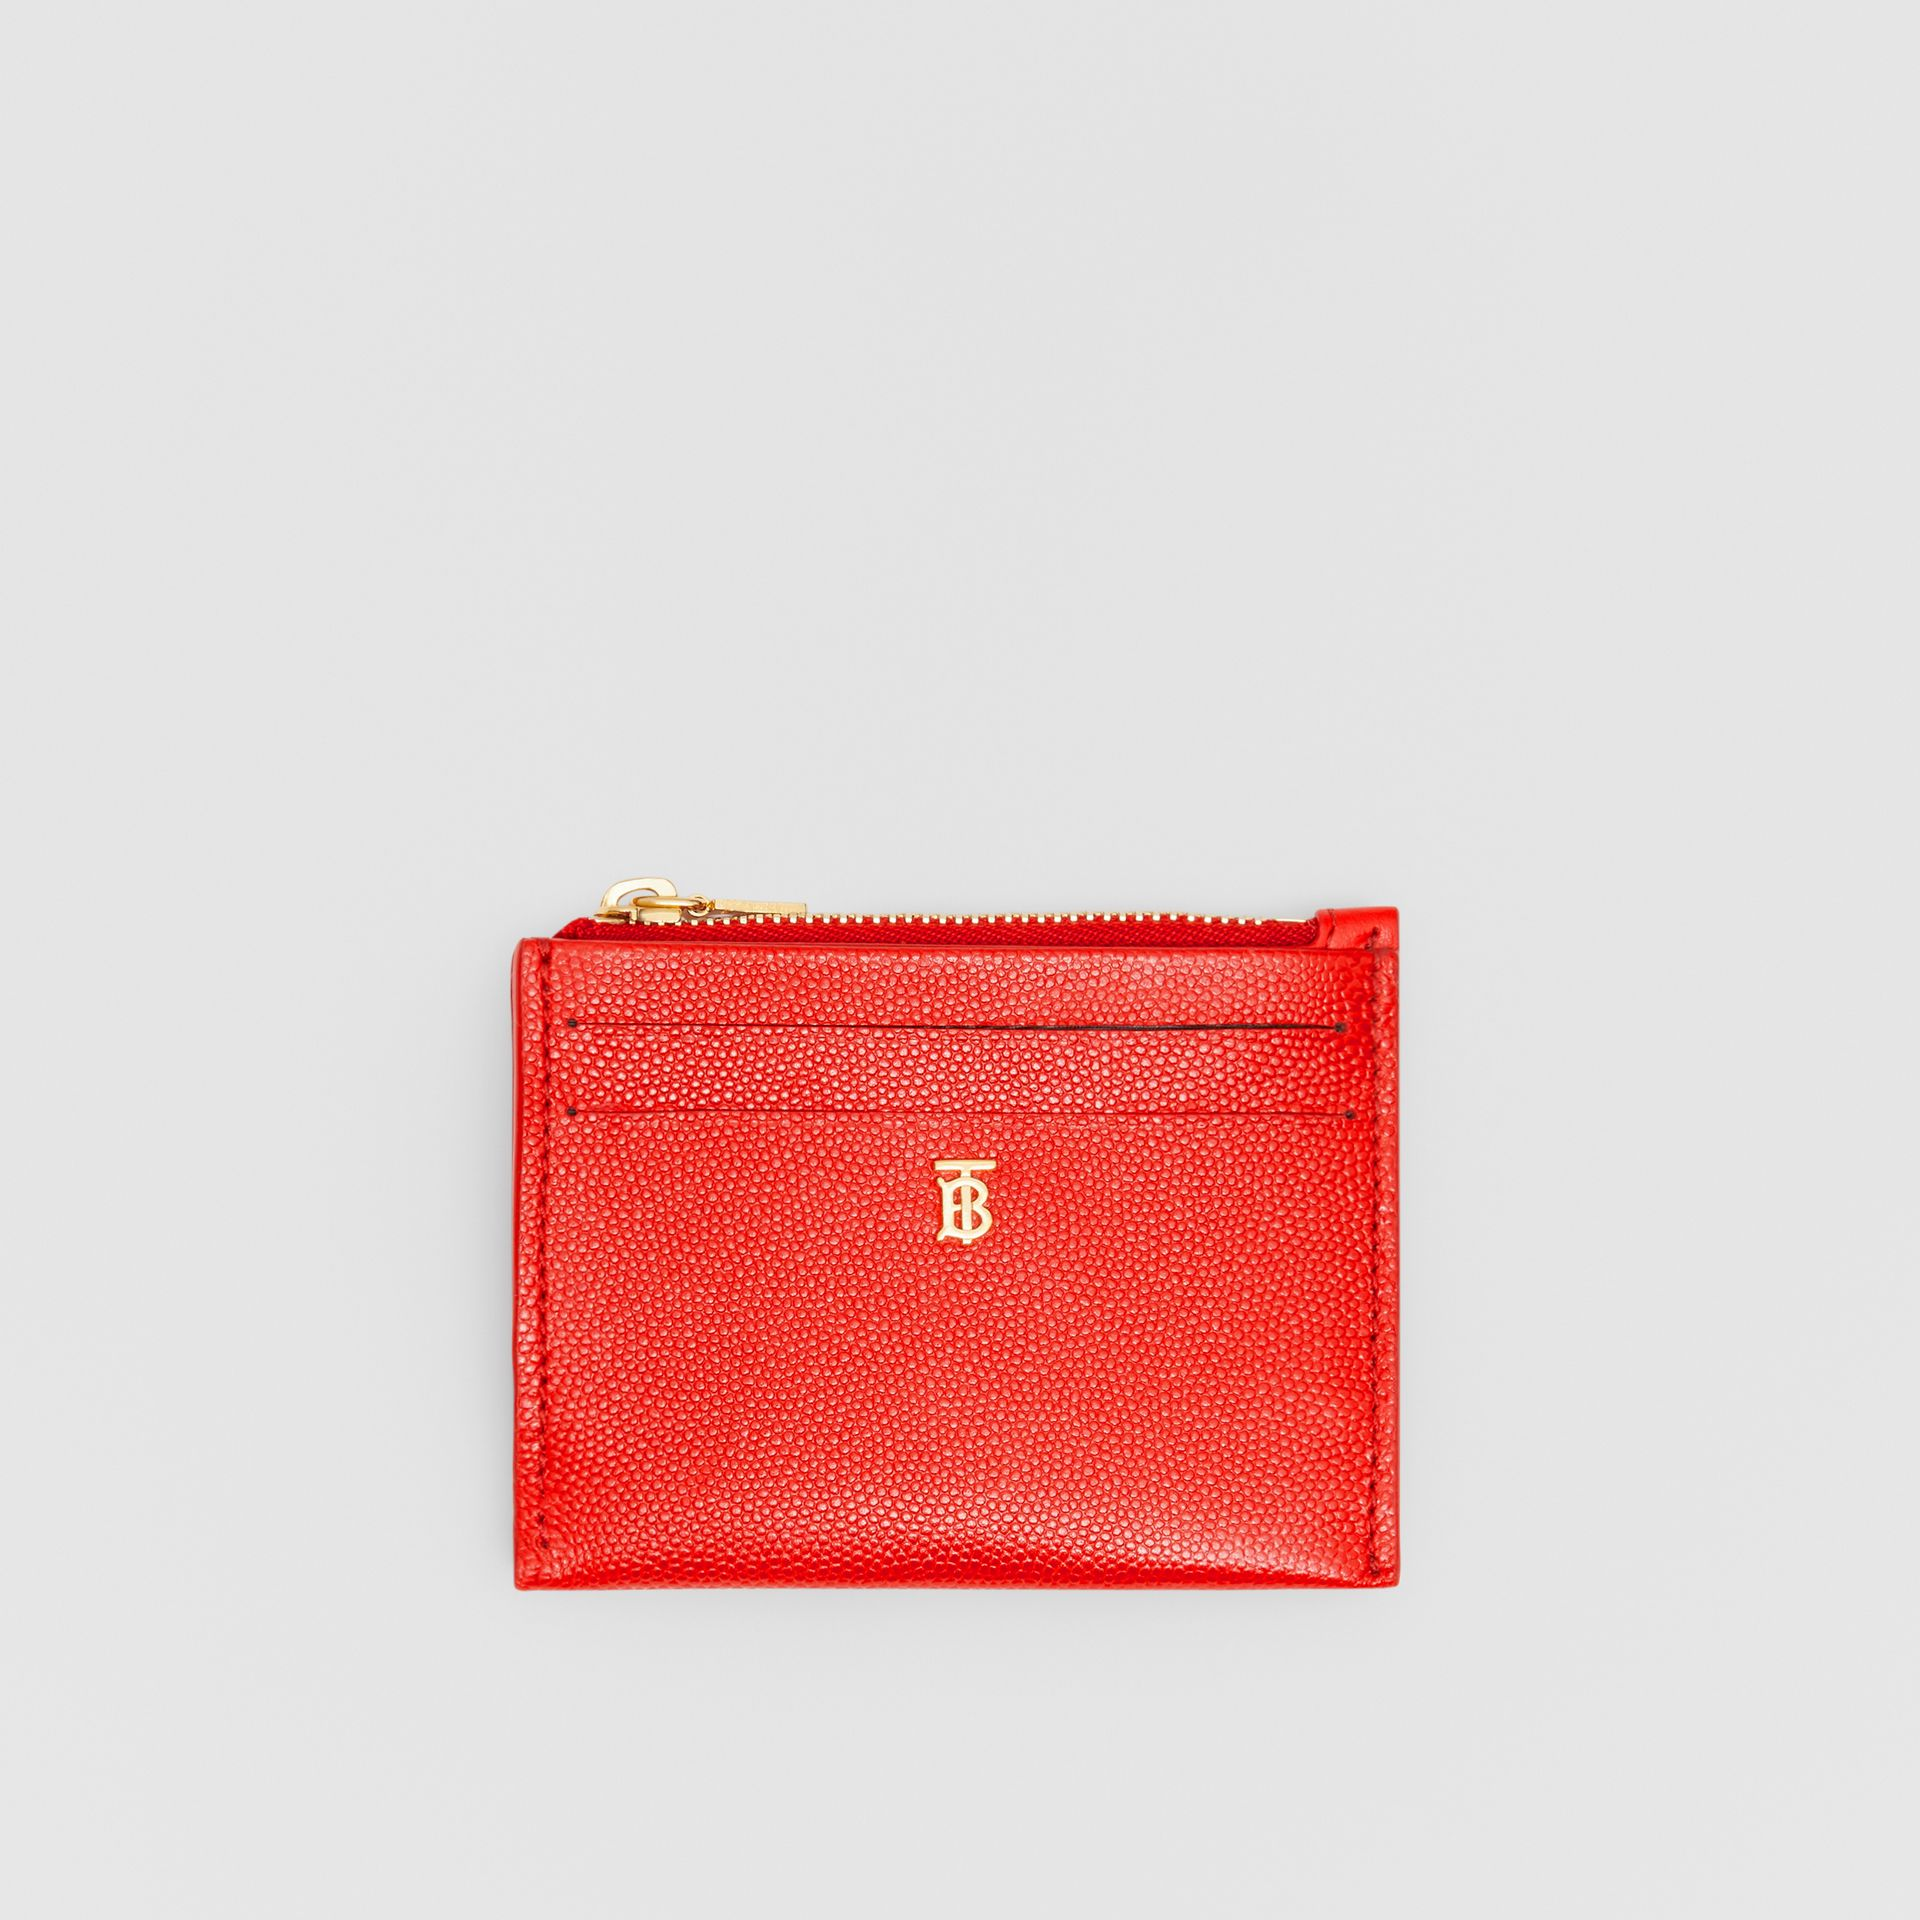 Monogram Motif Grainy Leather Zip Card Case in Bright Red - Women | Burberry - gallery image 0